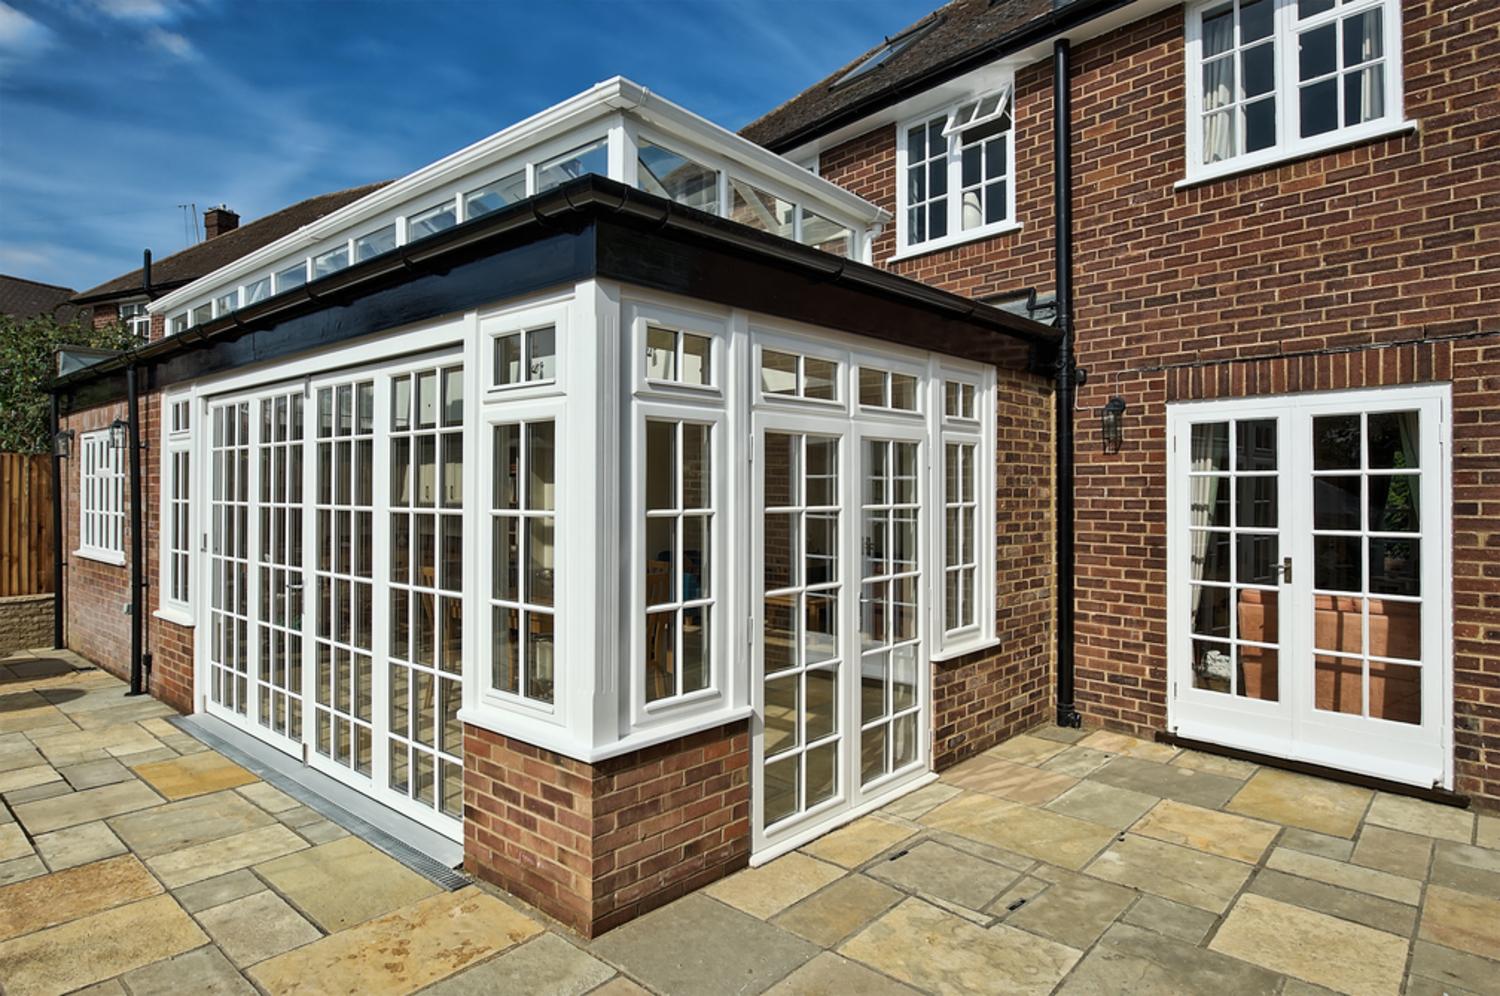 Outside doors and windows of a house extension by Harvey Norman Architects St Albans